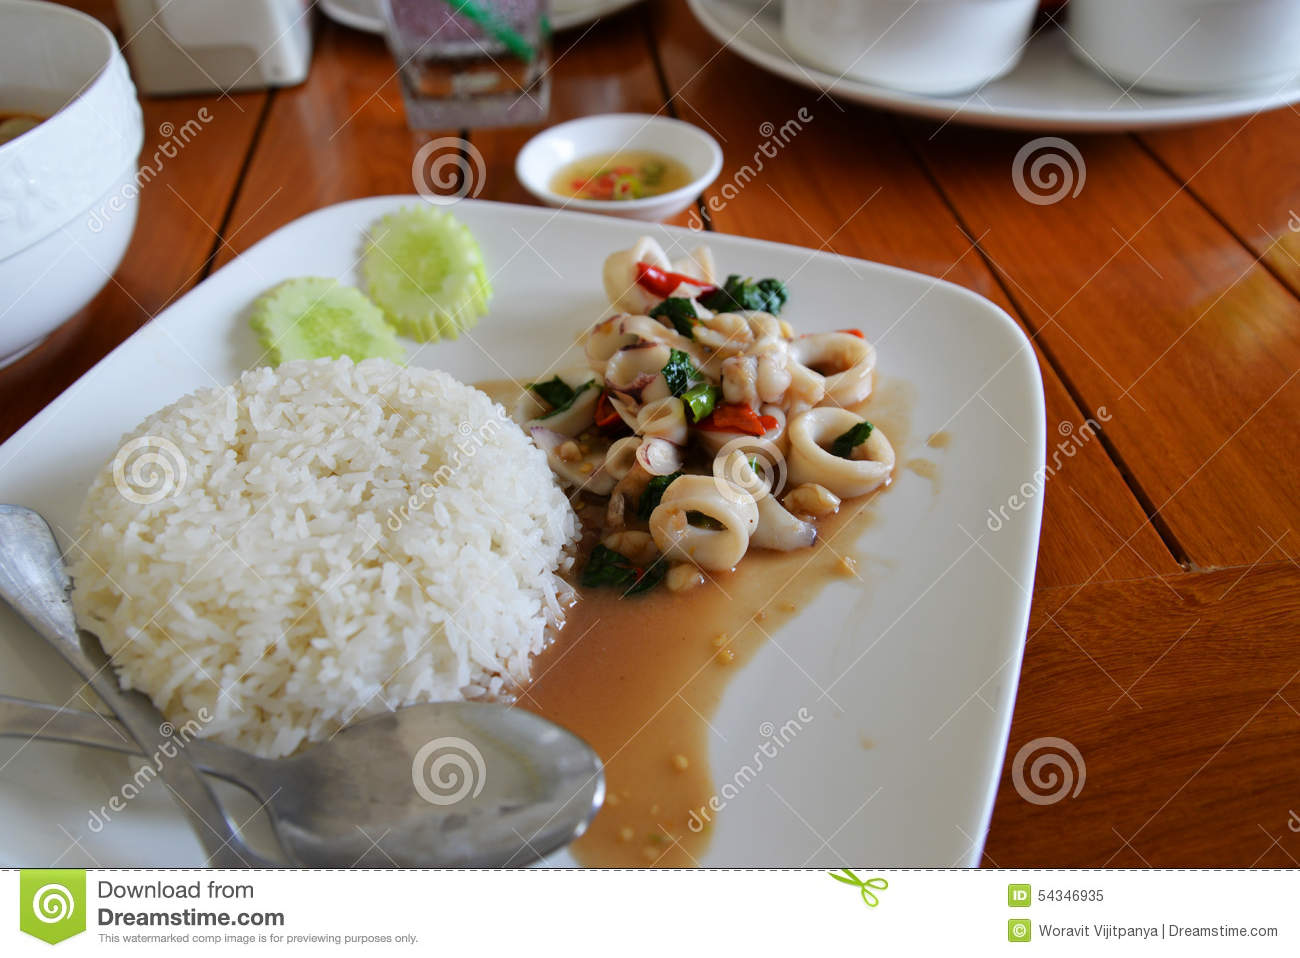 Spicy fried squid with basil leaves and rice thai food.